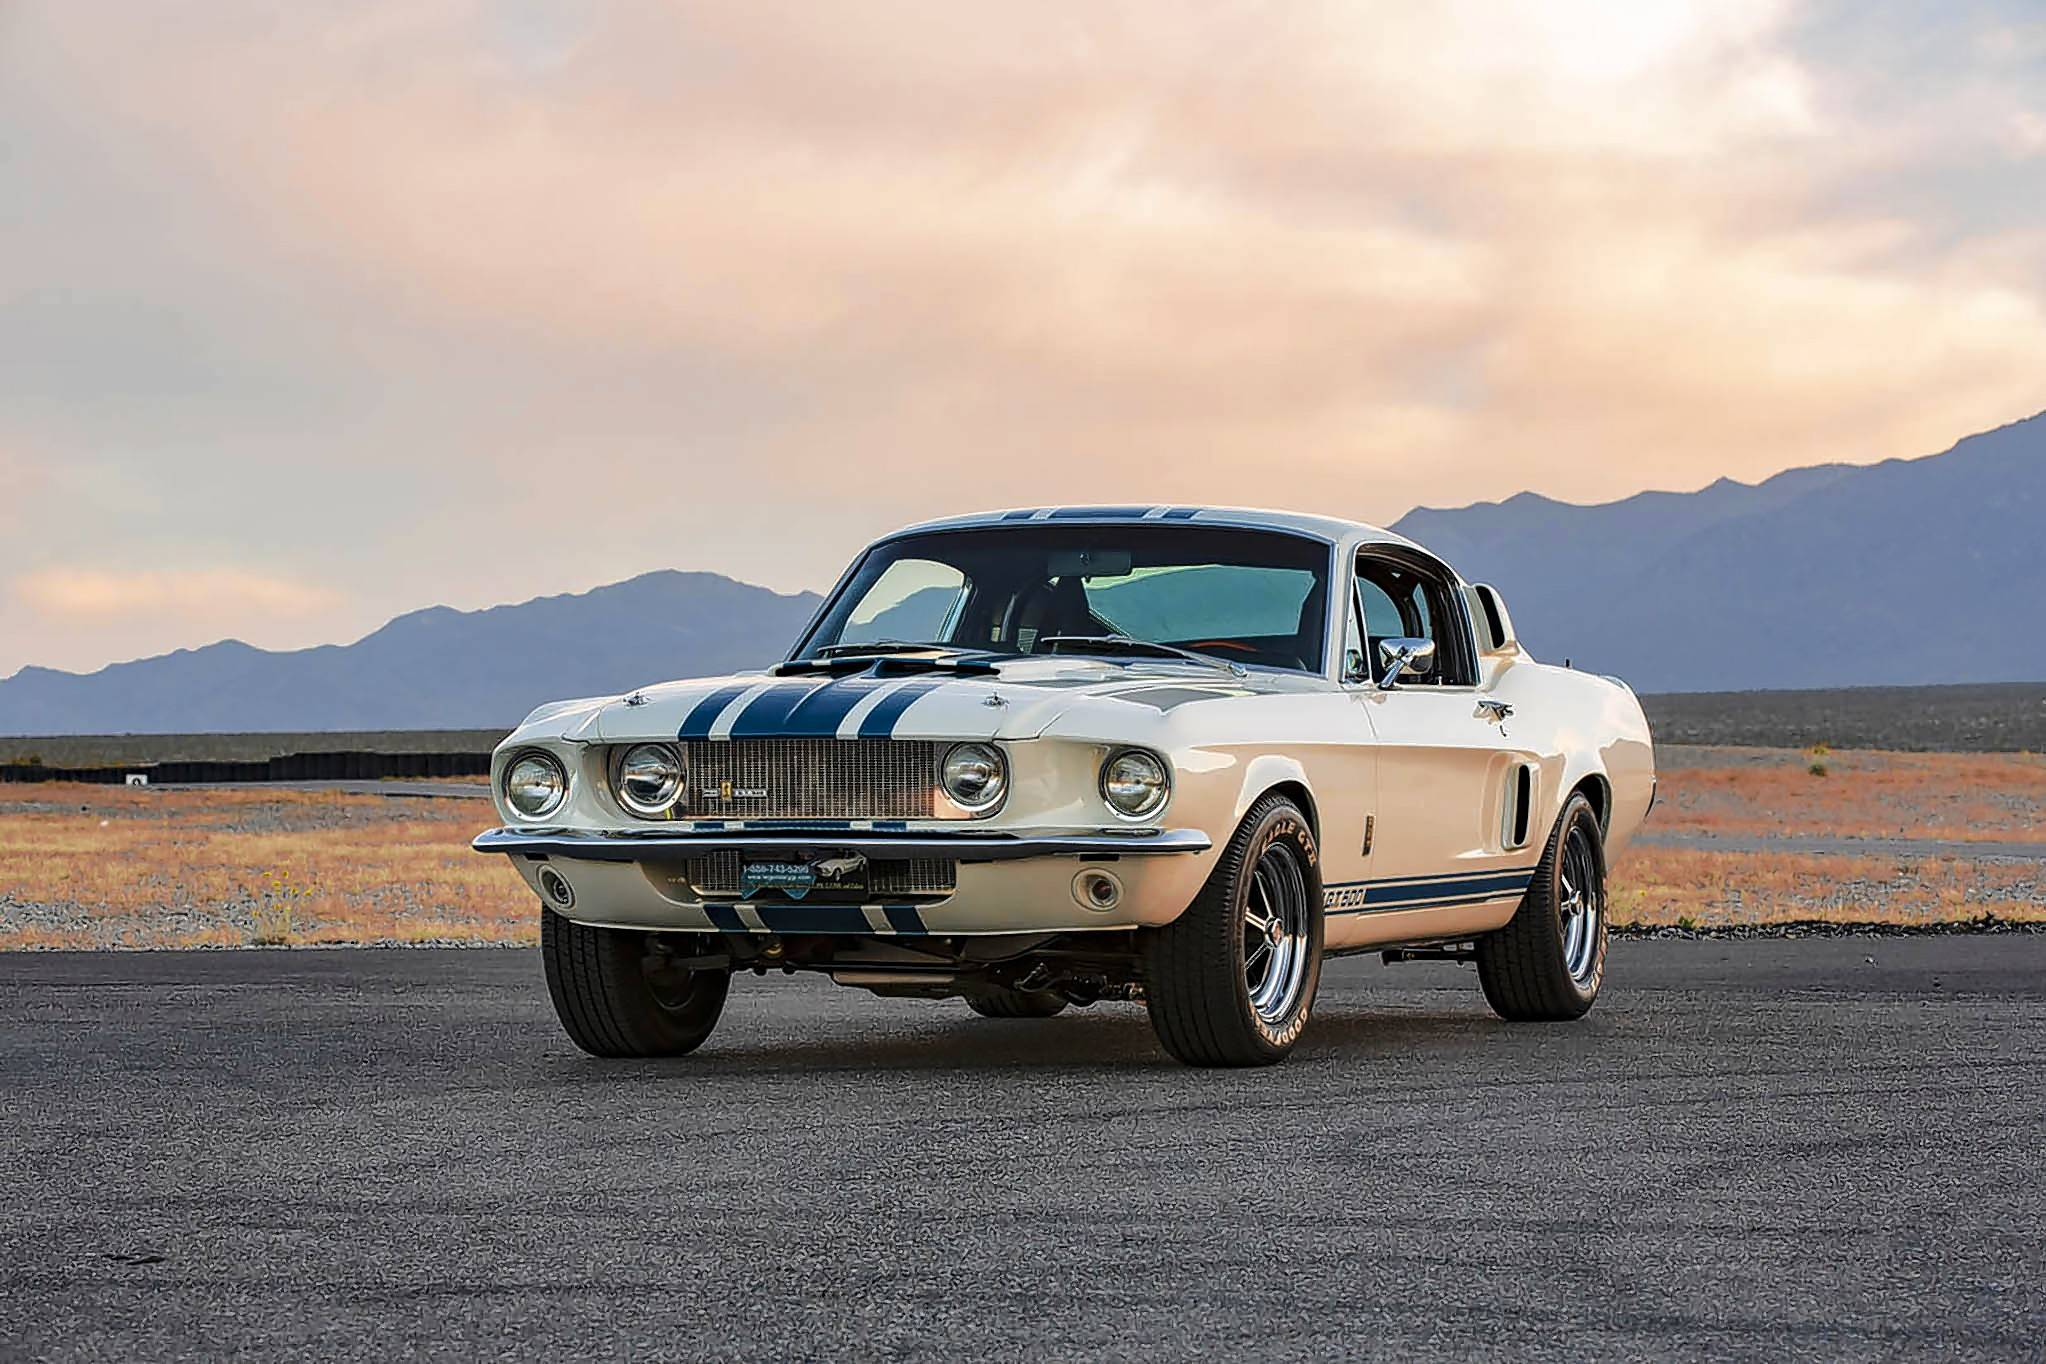 Shelby American will use 10 donor 1967 fastback Mustangs to create Shelby GT500 Super Snakes.